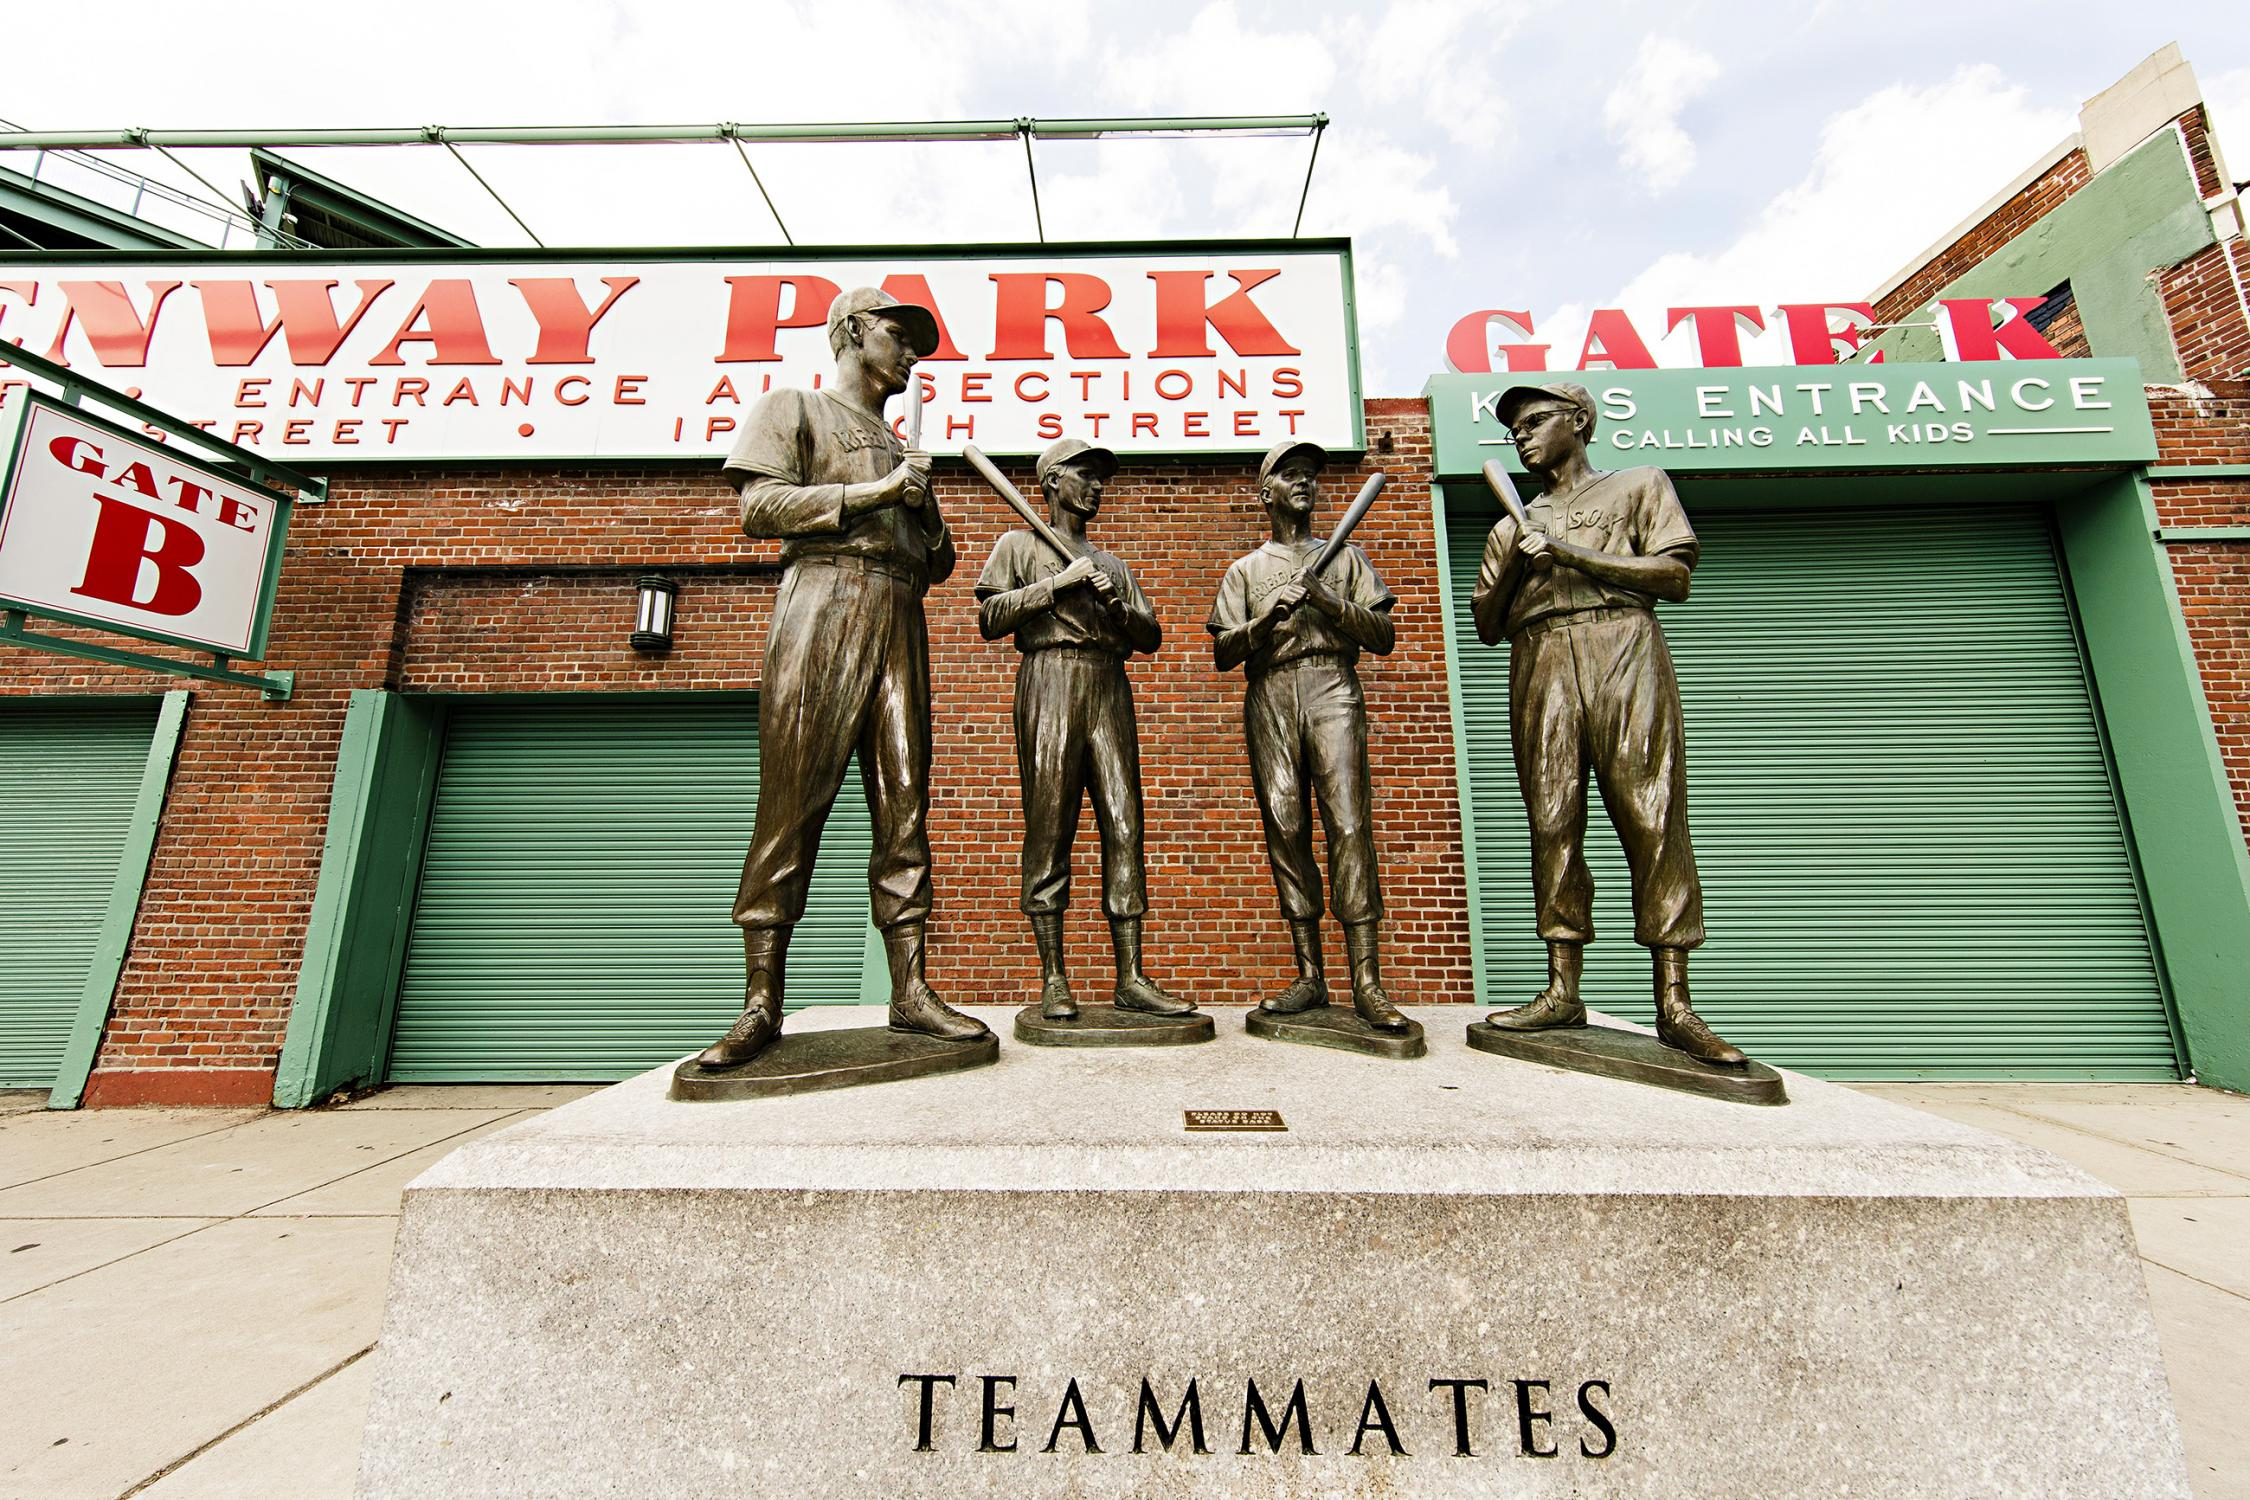 """The statue as seen with Fenway Park's Gate B in the background, the pedestal inscribed with the word """"Teammates"""" can be seen the the foot of the image"""